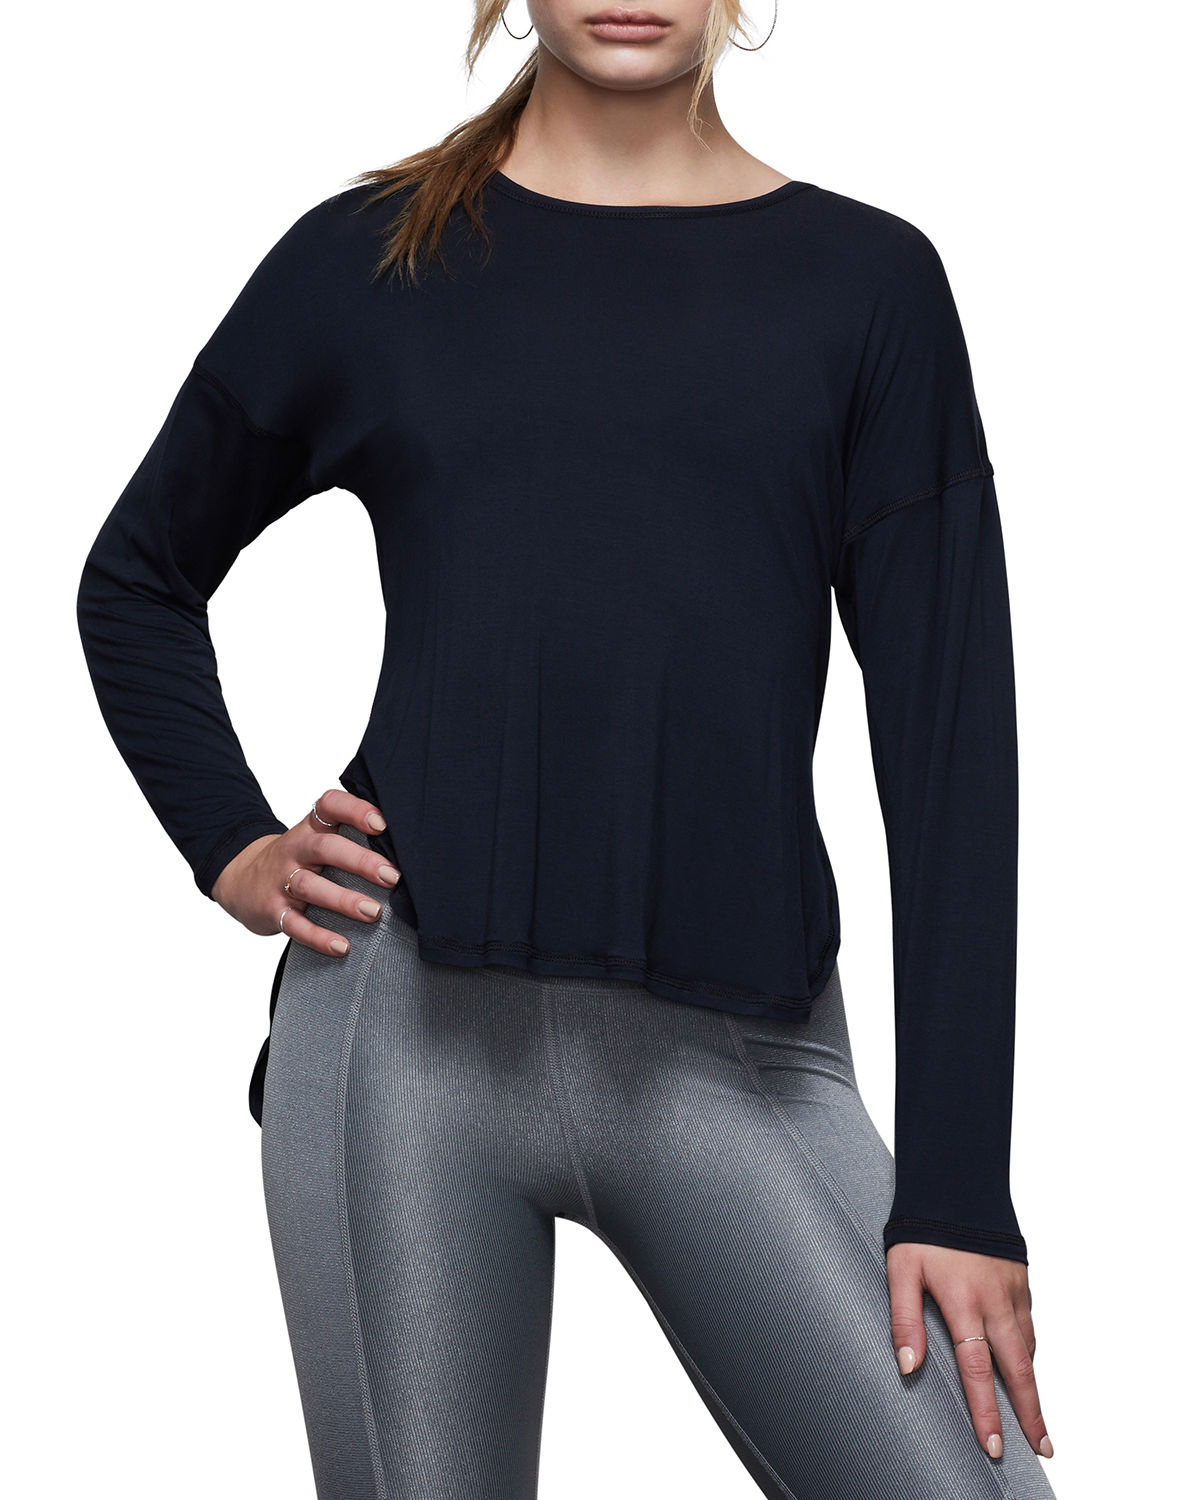 GOOD AMERICAN CRISS CROSS BACK LONG-SLEEVE ACTIVE TOP - INCLUSIVE SIZING